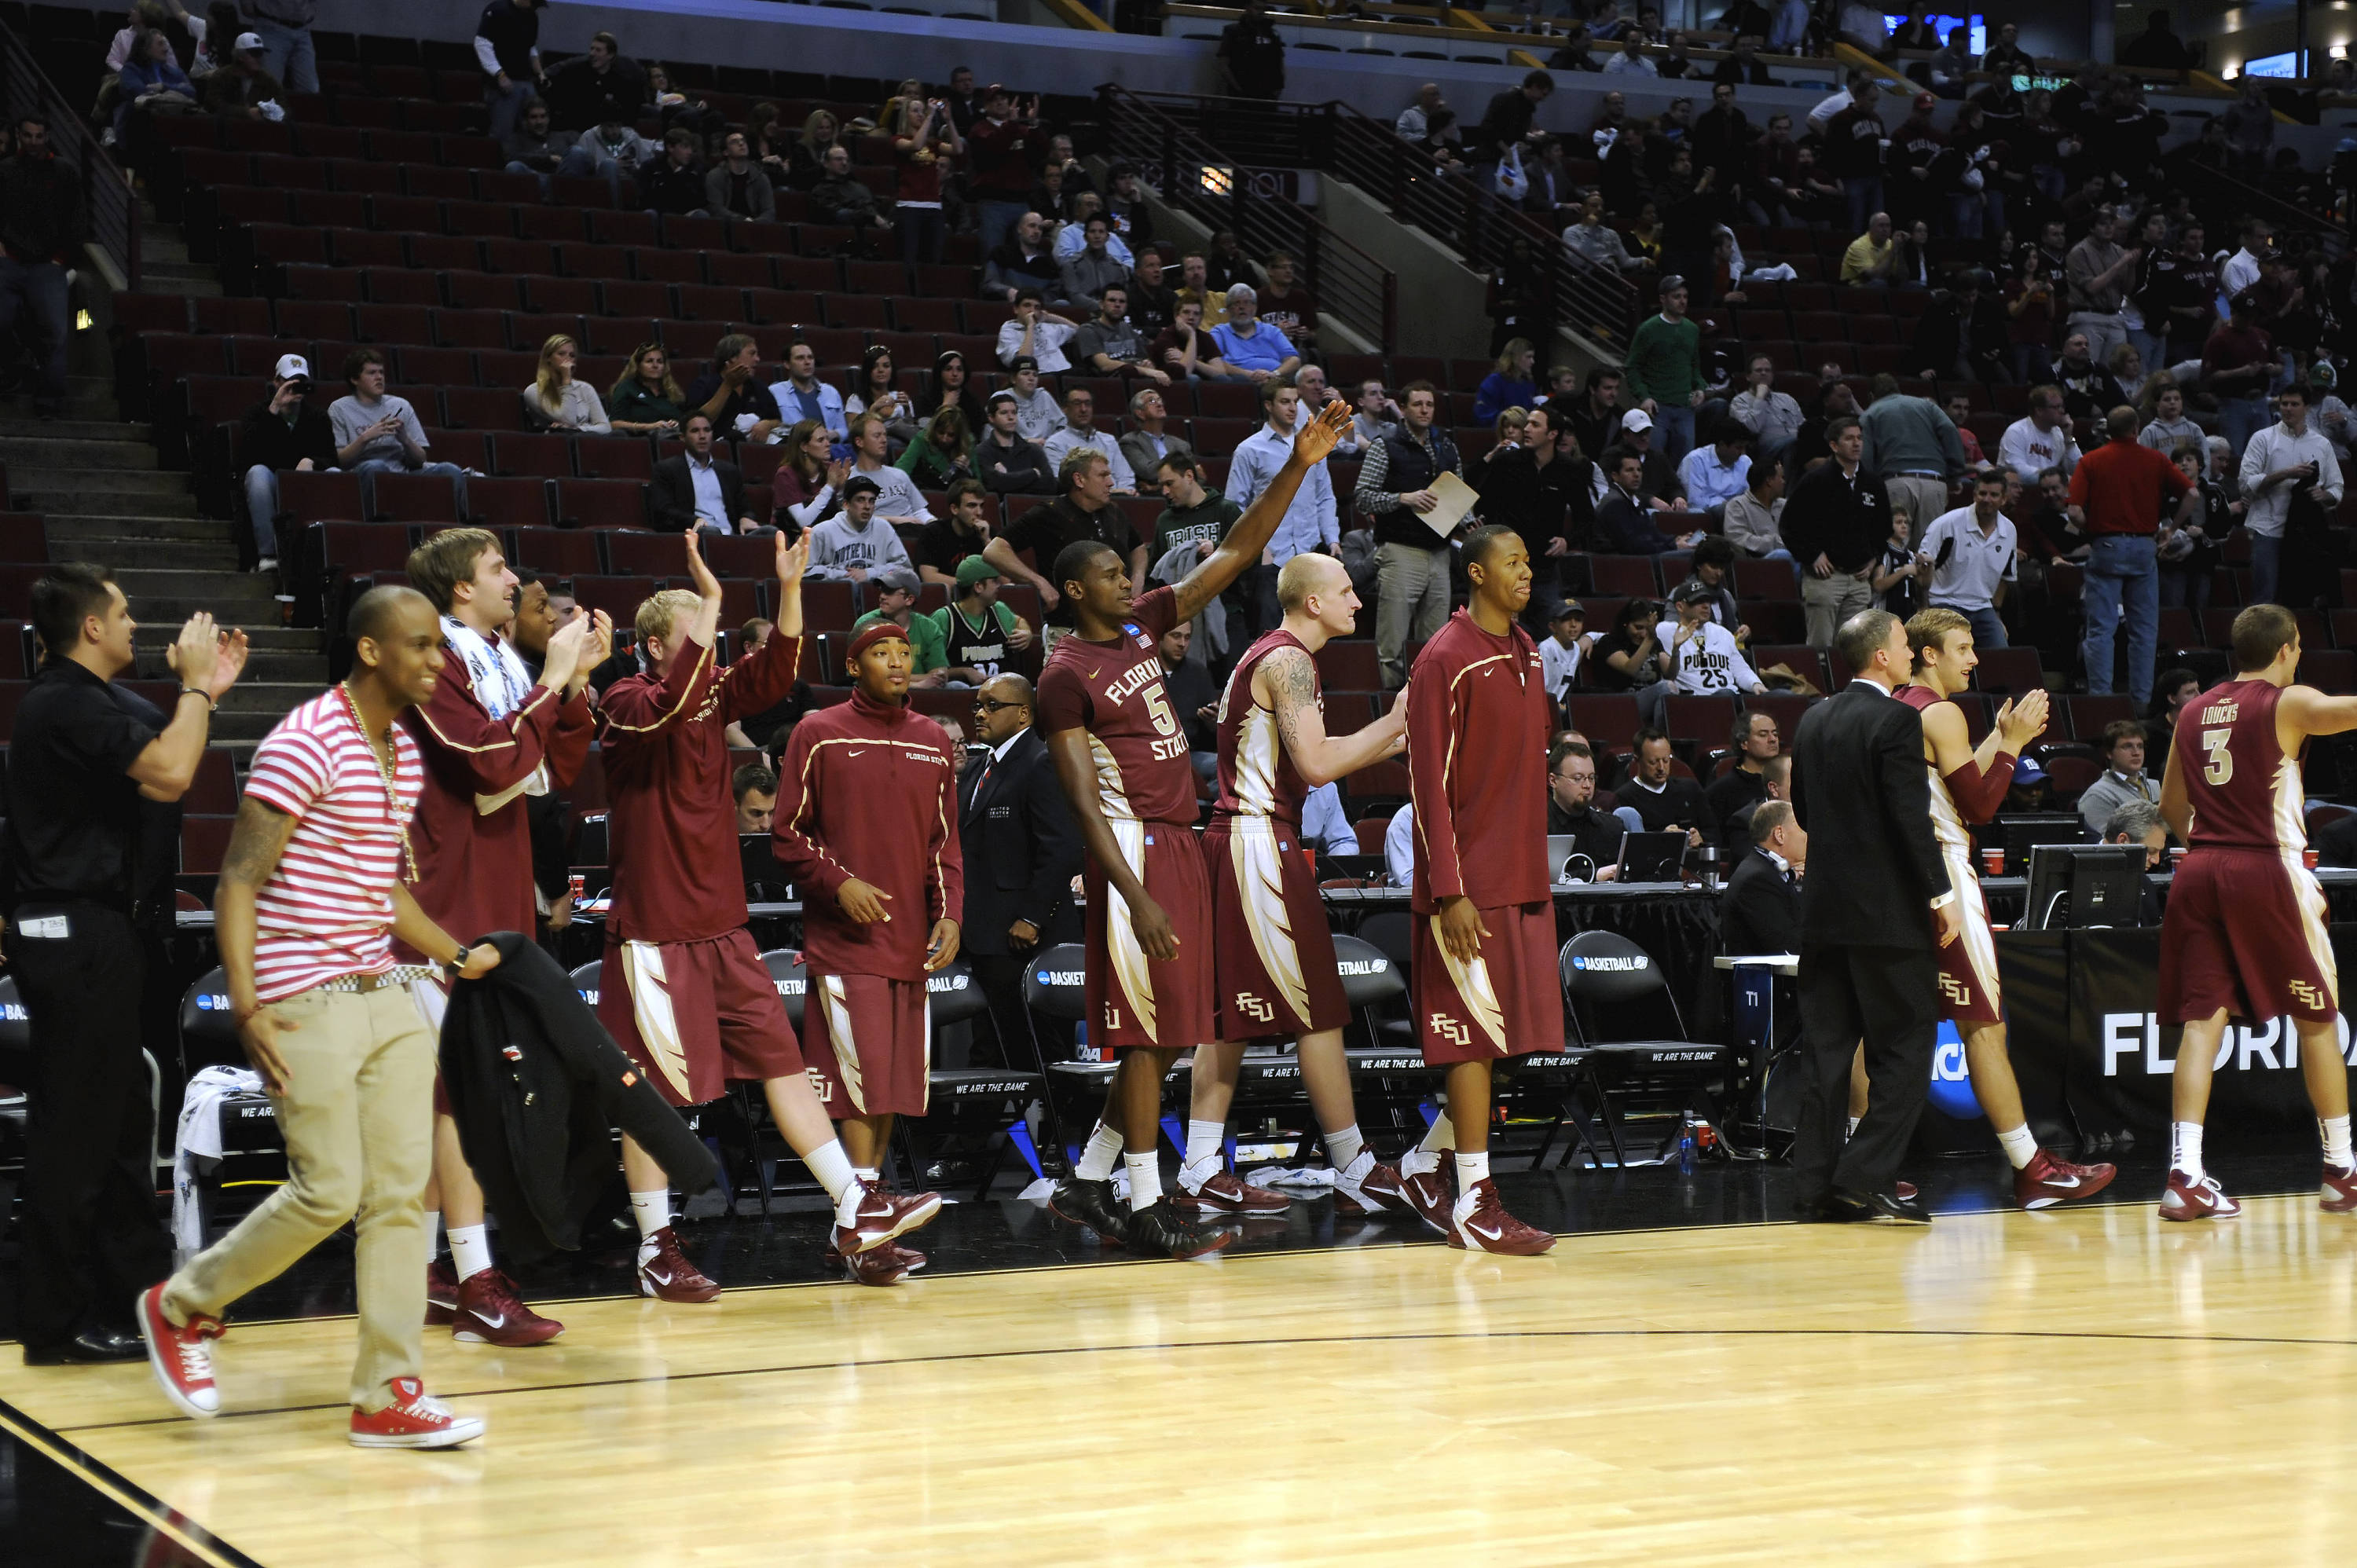 The Florida State bench celebrates the team's second round NCAA Tournament victory